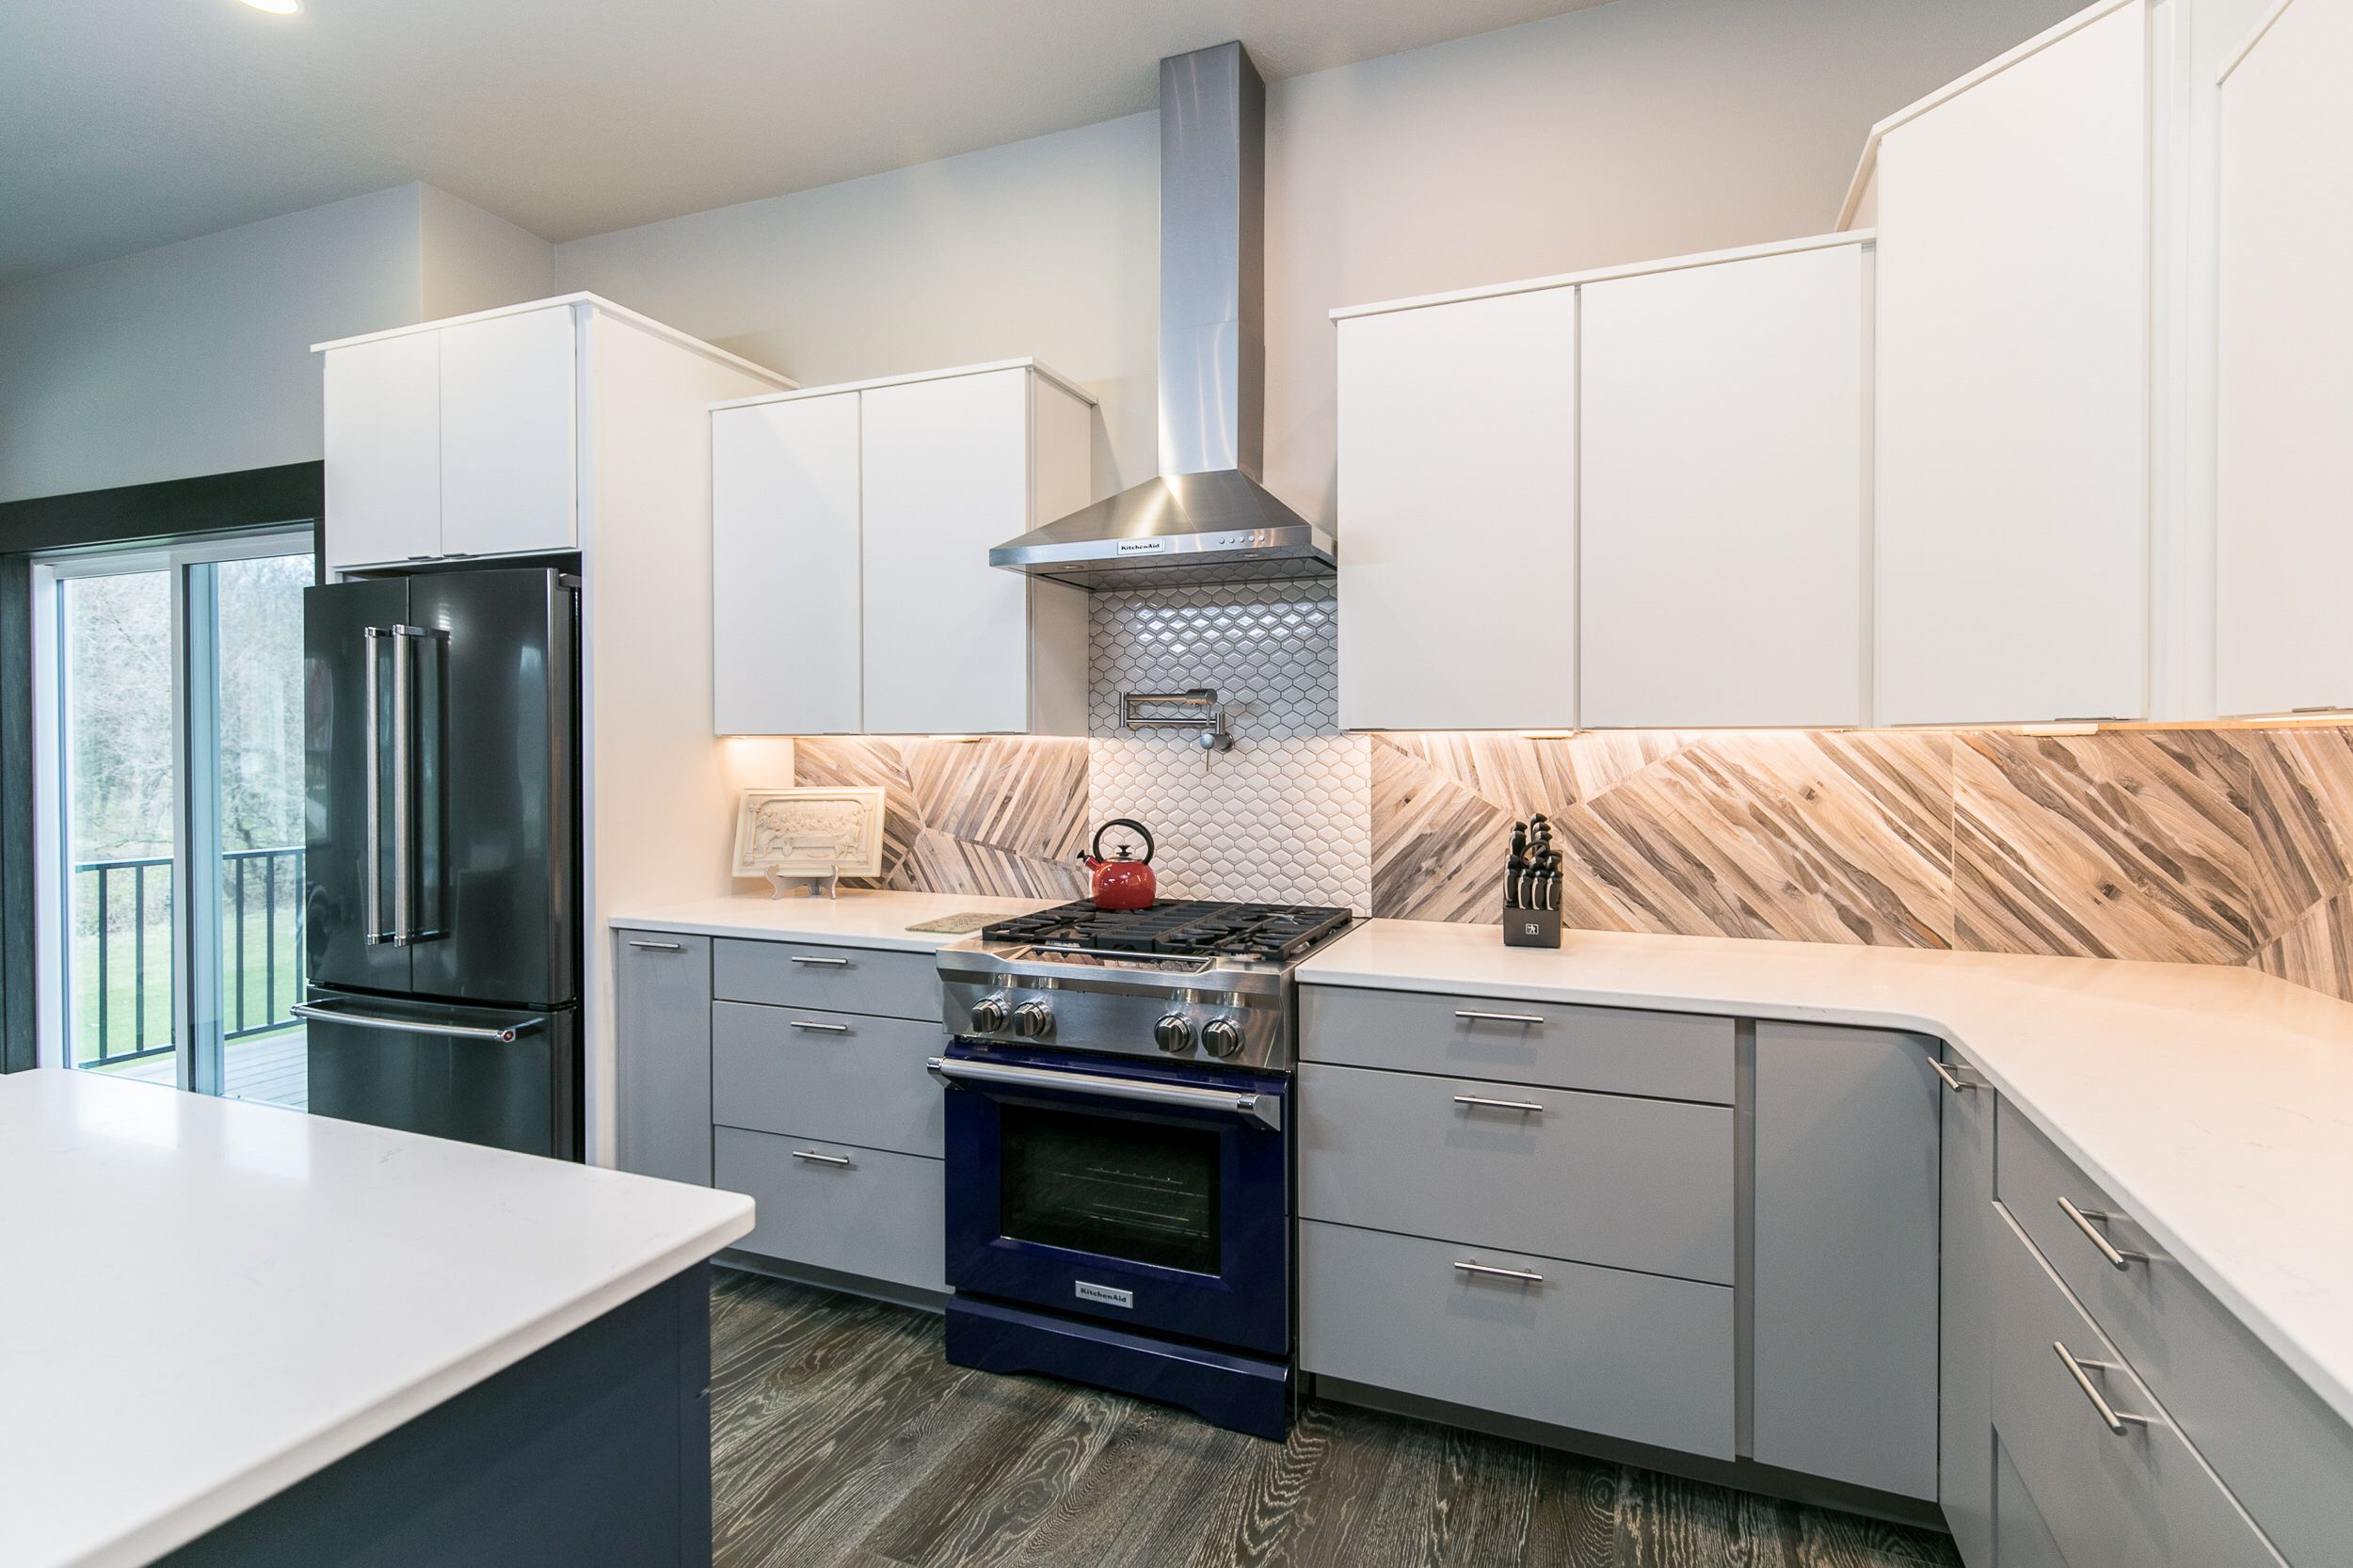 Add glossy cabinets, chrome finishes, and designed tiles ...